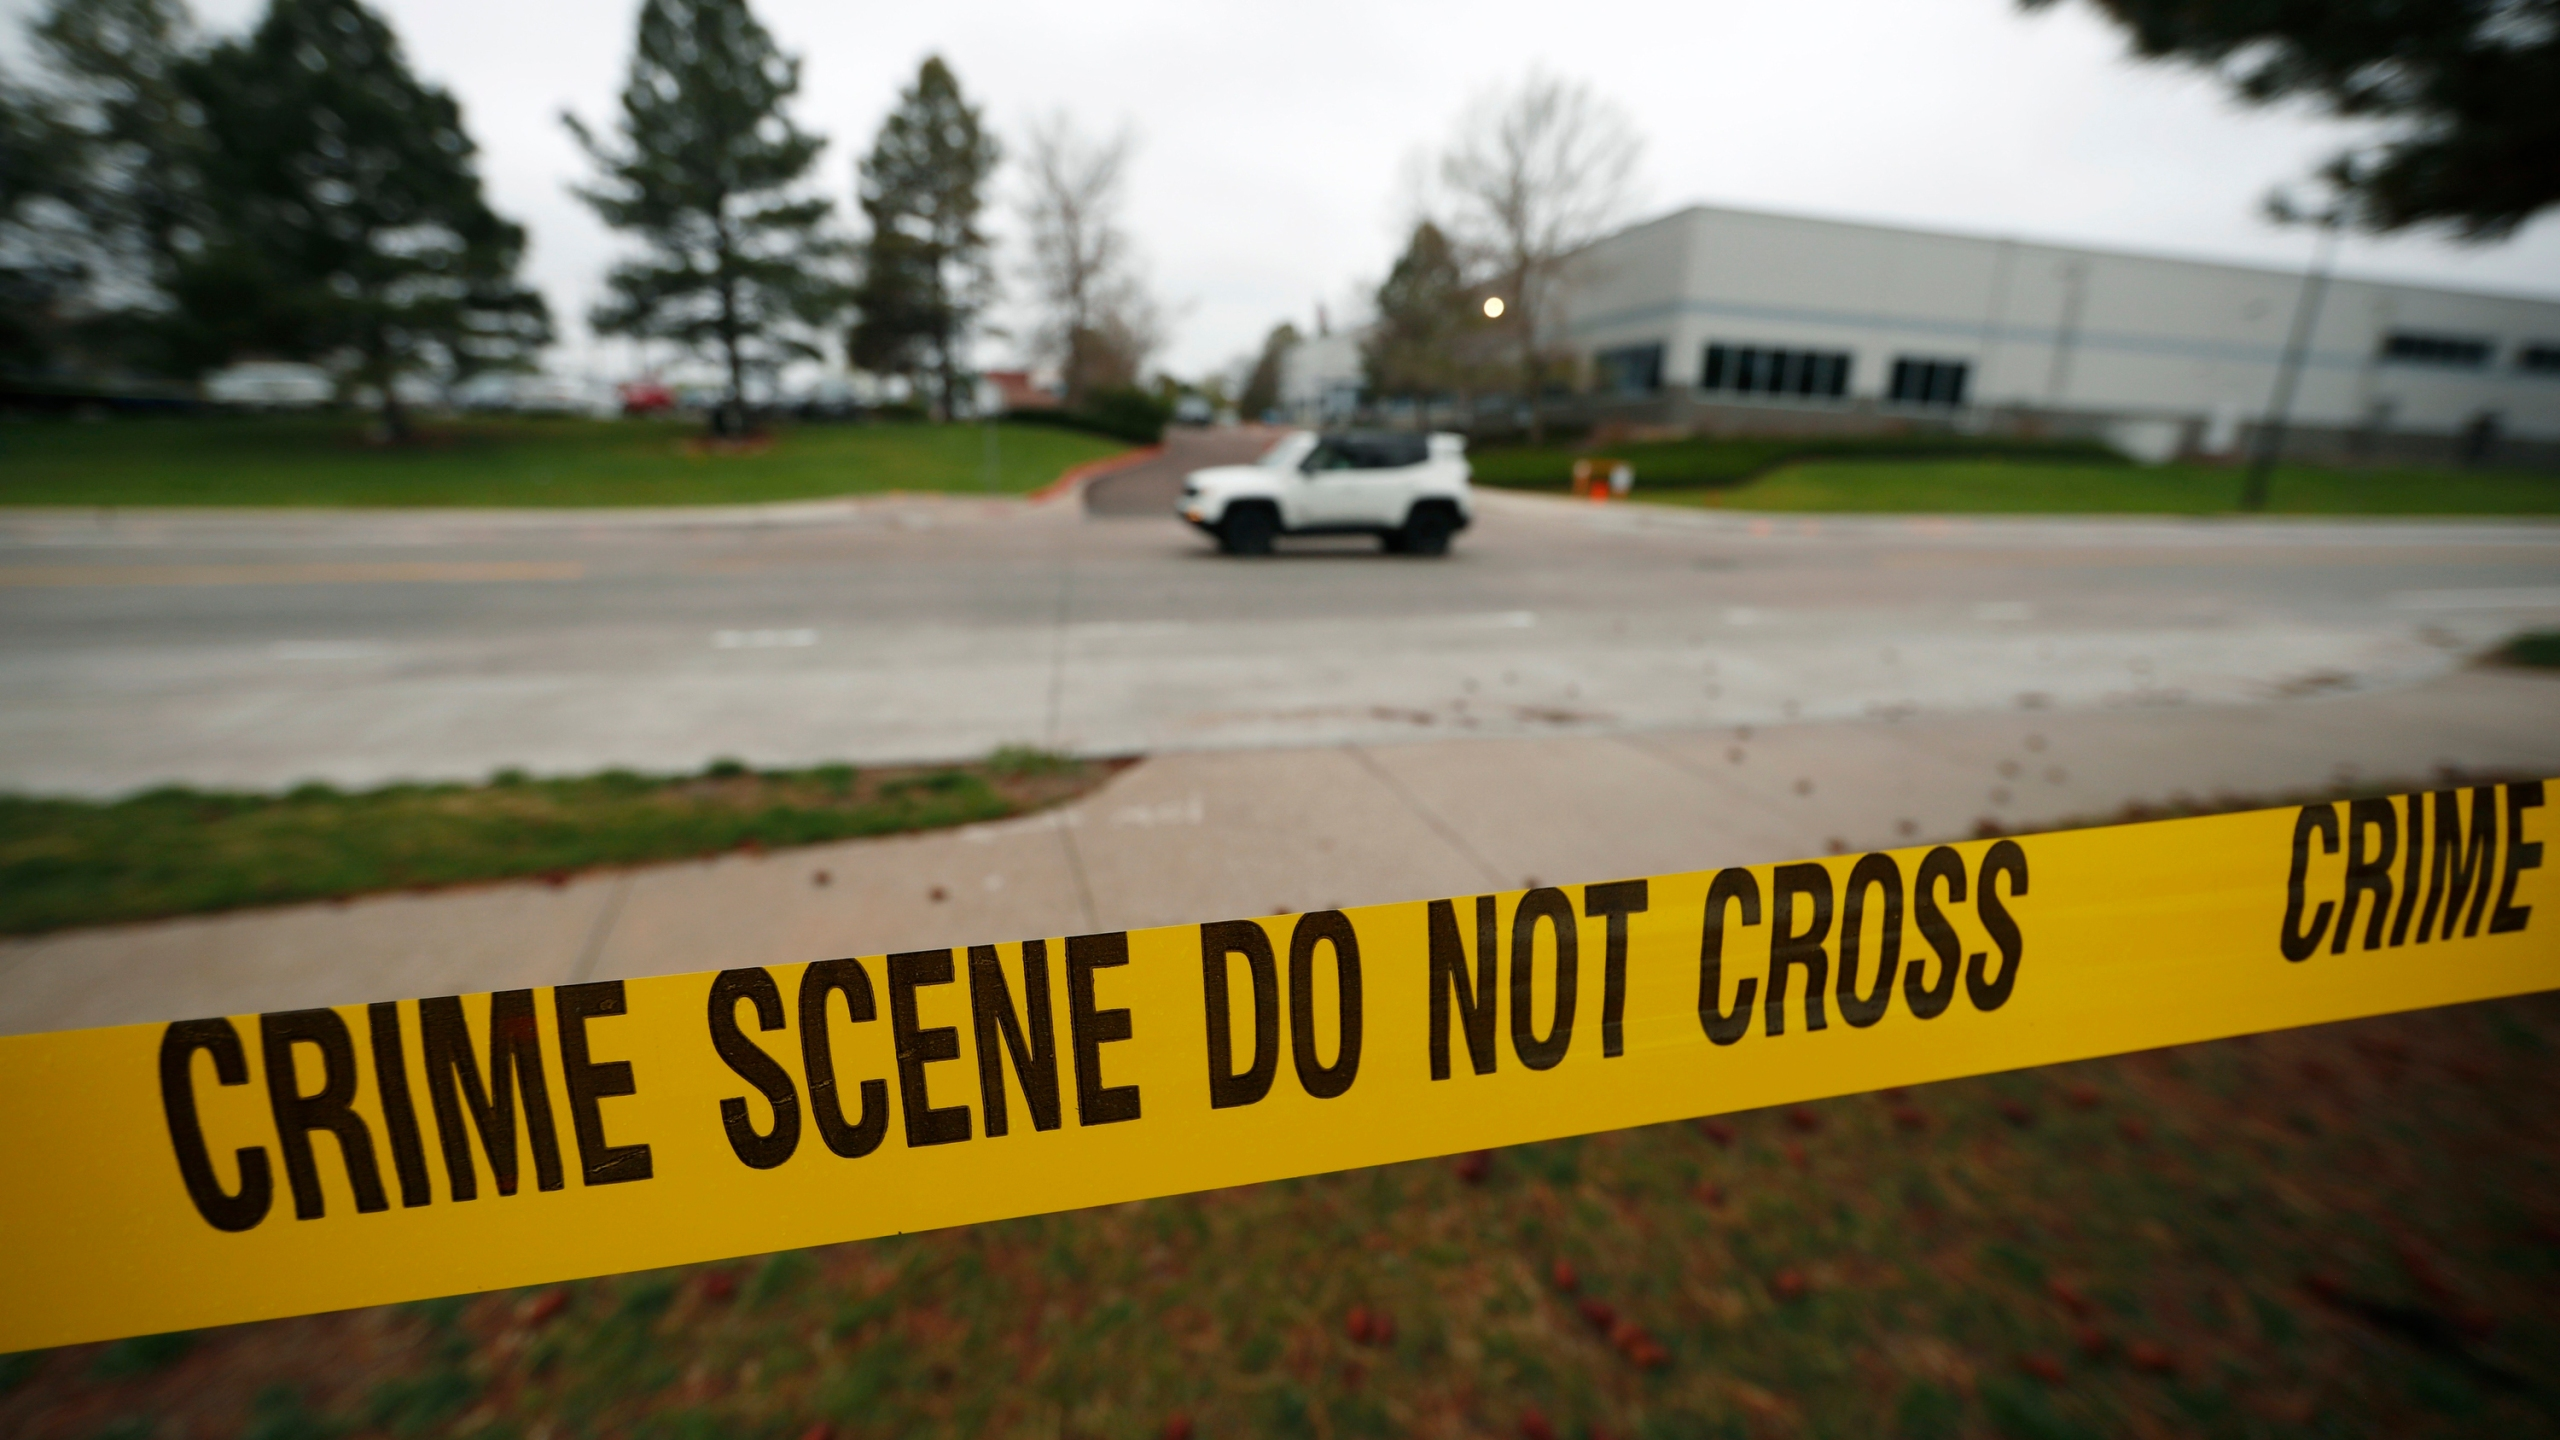 Police tape remains near the scene following Tuesday's shooting at STEM Highlands Ranch school, Wednesday, May 8, 2019, in Highlands Ranch, Colo. AP